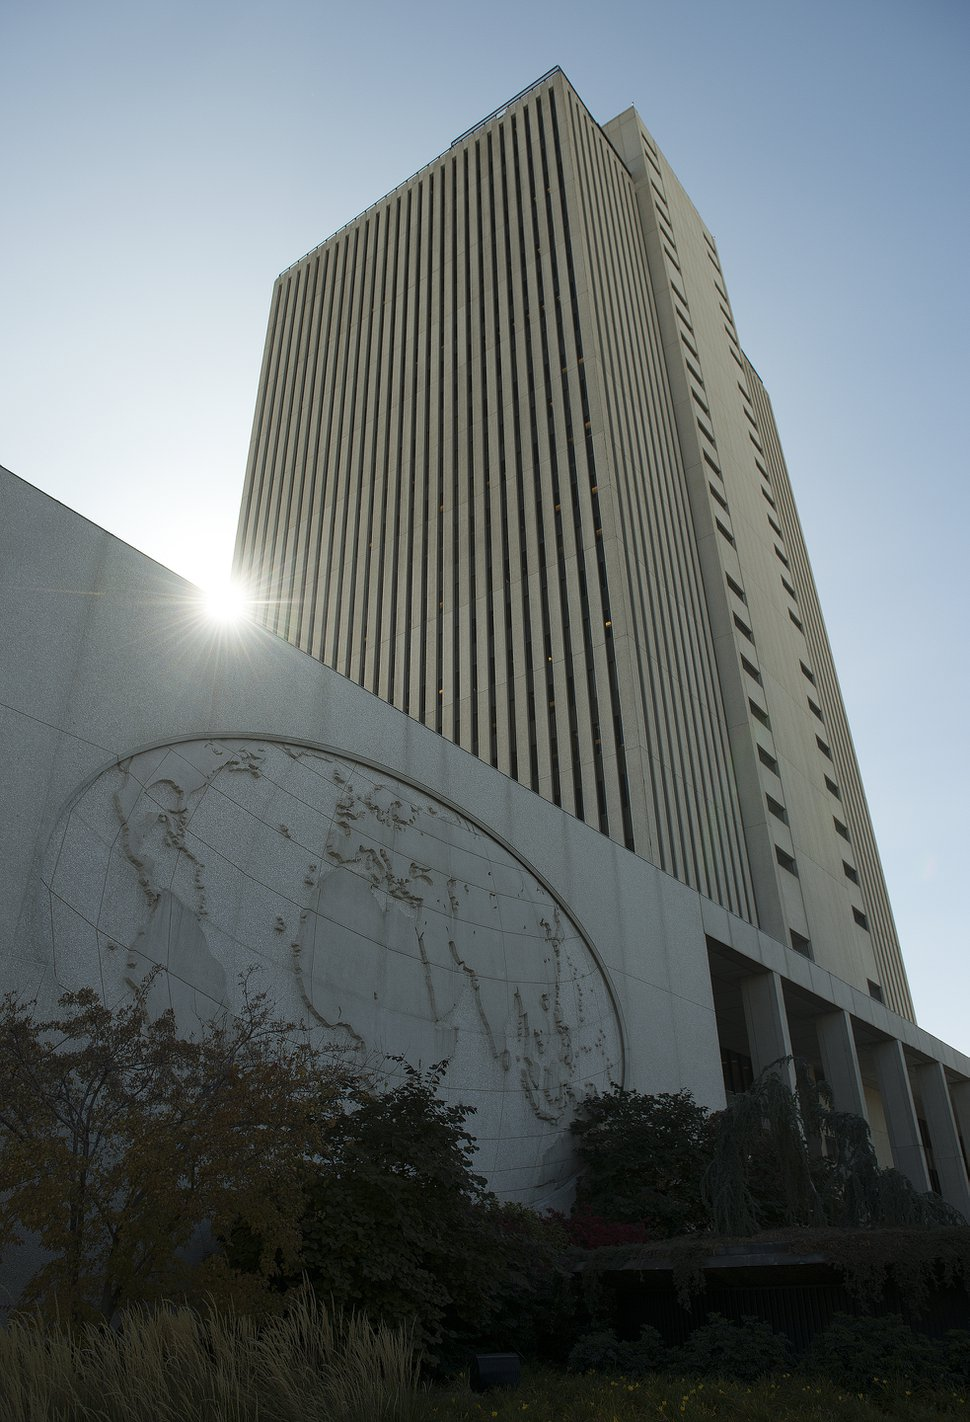 The Church Office Building, located at 50 E N Temple St, Salt Lake City, is home to the headquarters of The Church of Jesus Christ of Latter-day Saints.